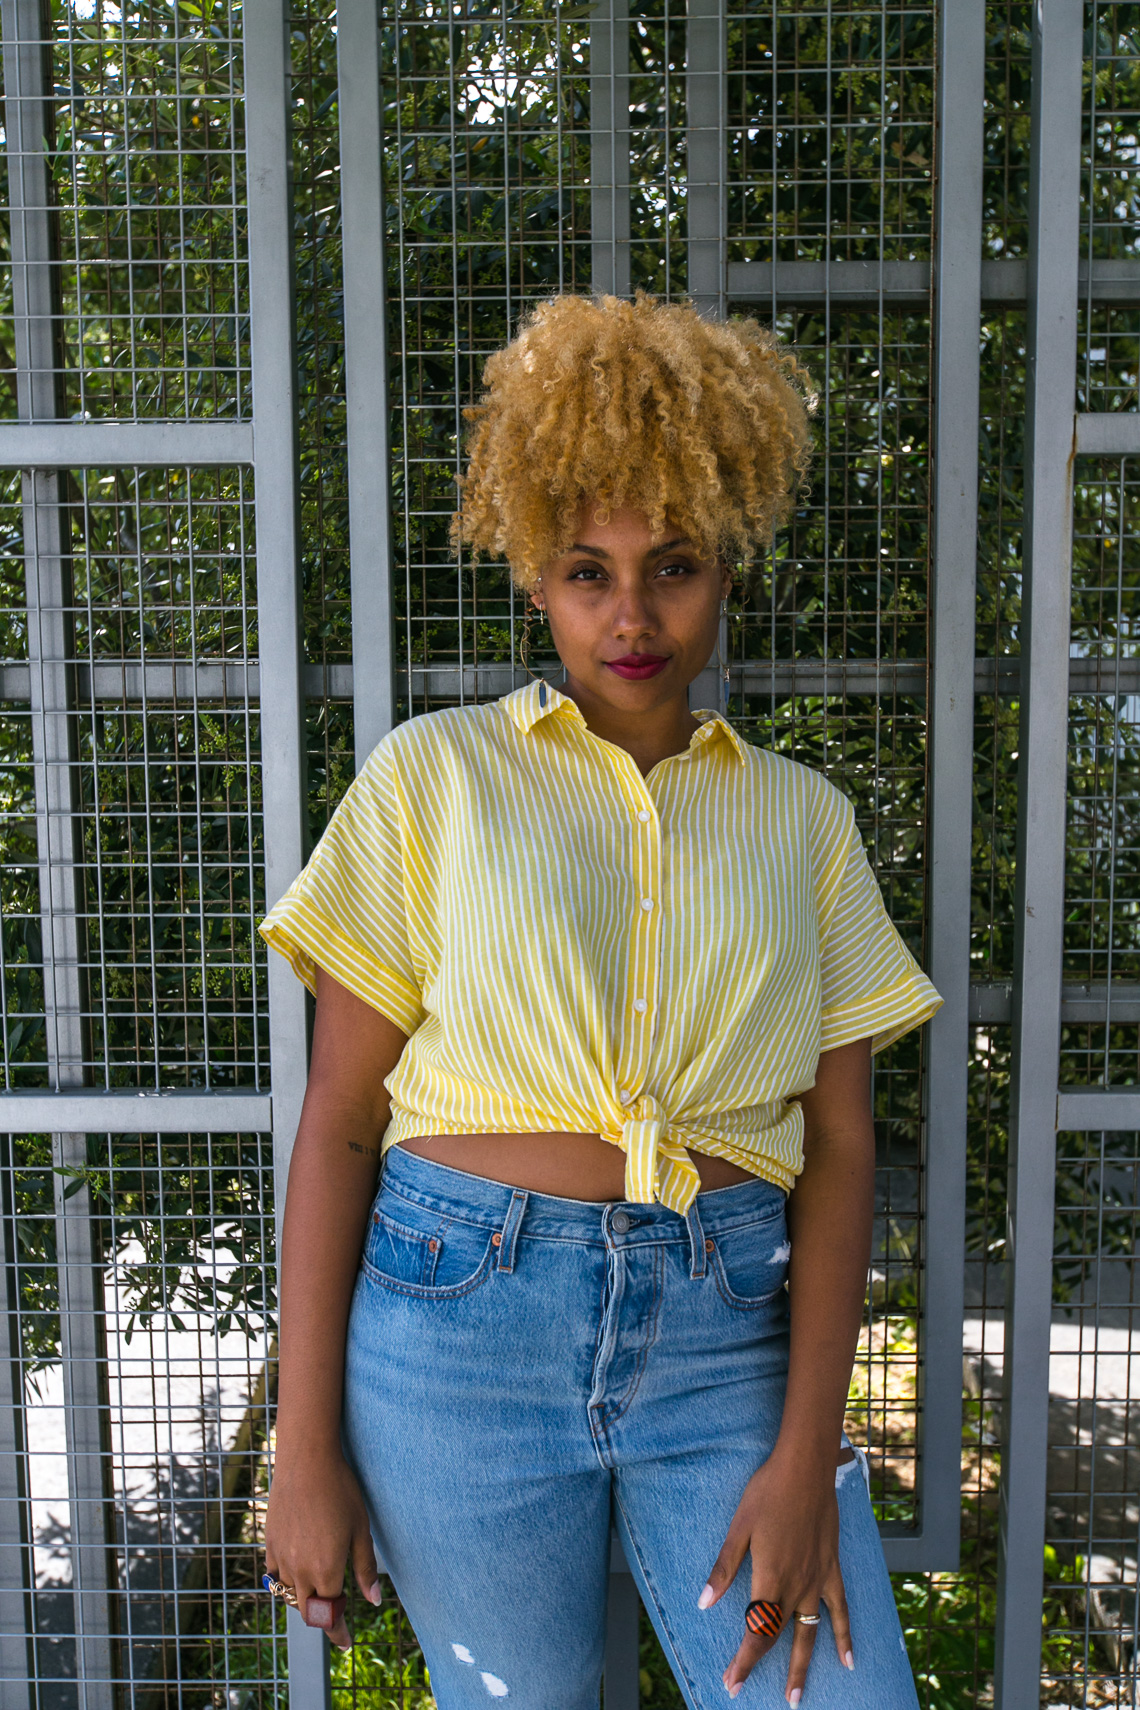 h&m-wear who you are-levis wedgie fit jeans-rsee-yellow blouse-summer outfit-look 1